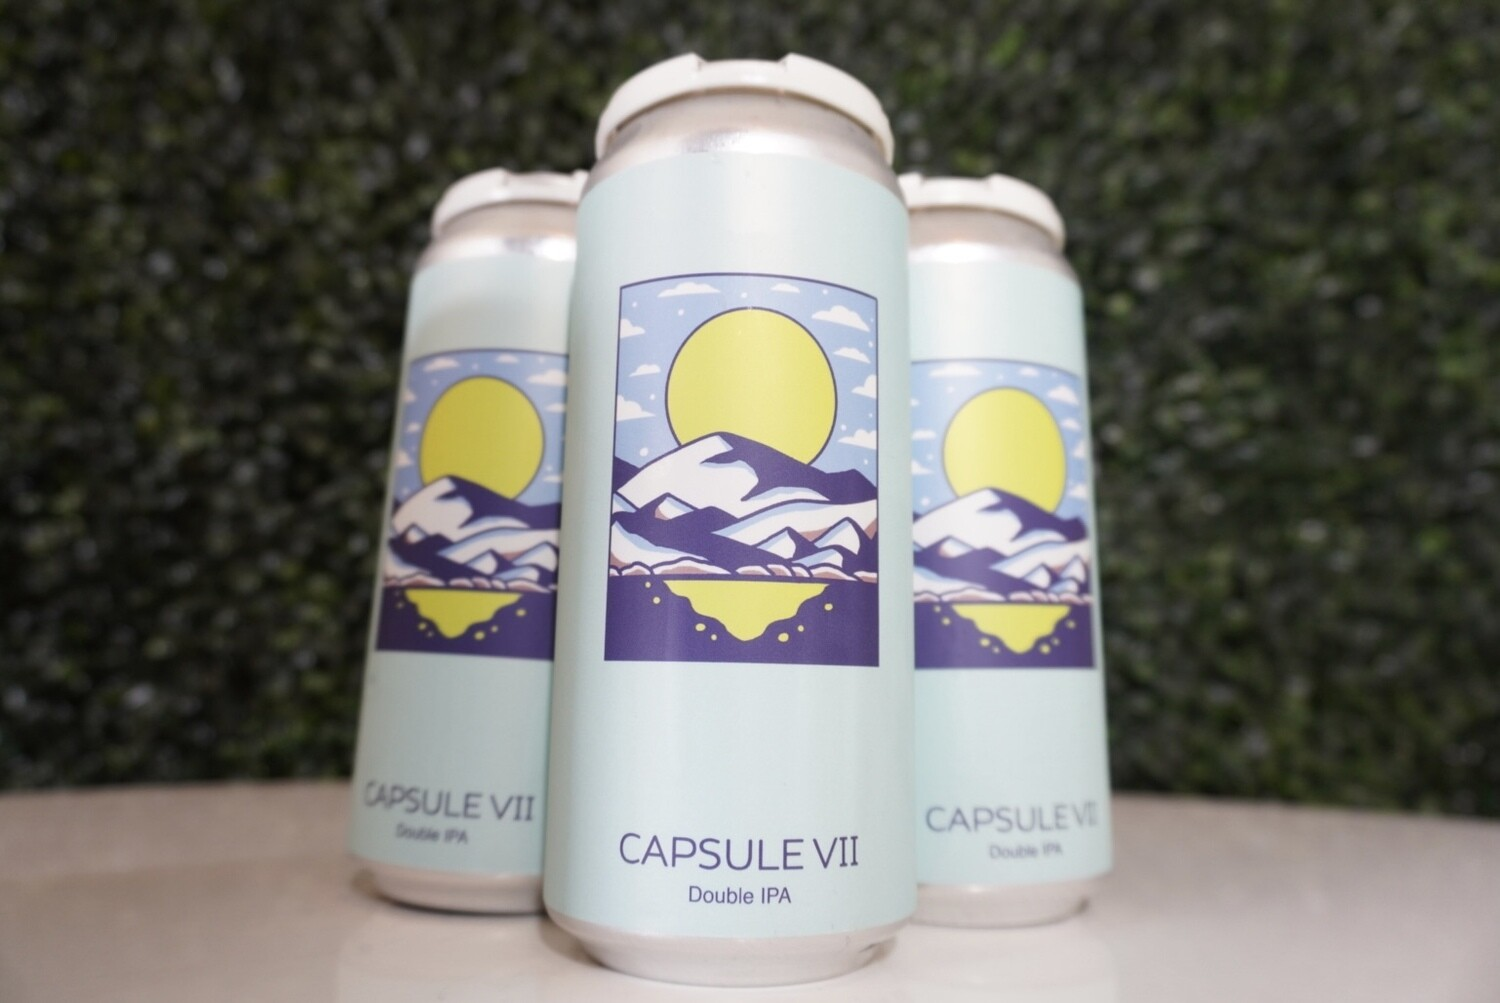 Hudson Valley - Capsule VII - Double IPA - 8% ABV - 4 Pack